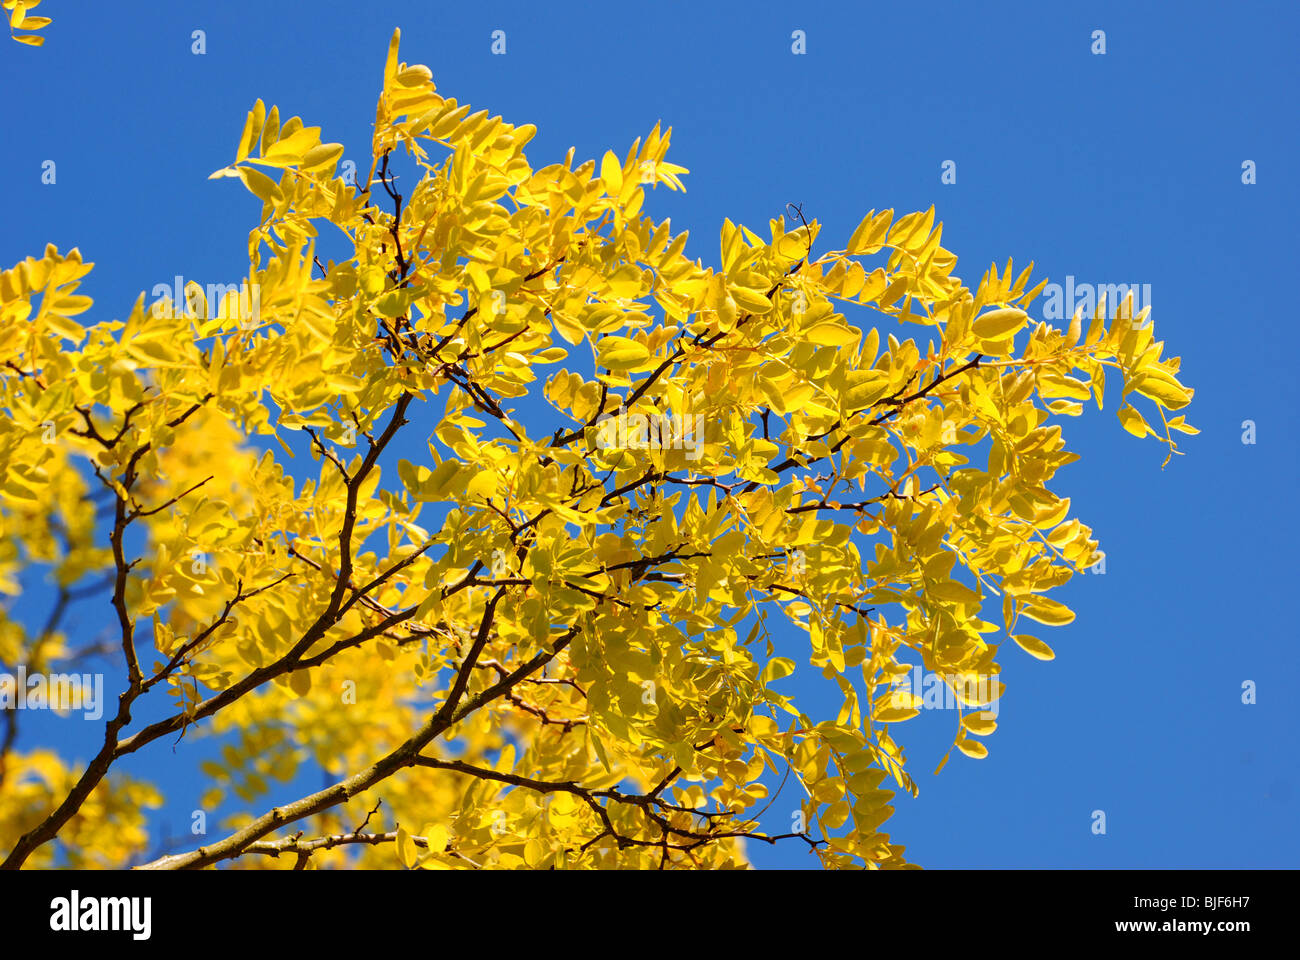 Blue sky and yellow leaves on a tree in springtime in the UK. Horizontal landscape - Stock Image